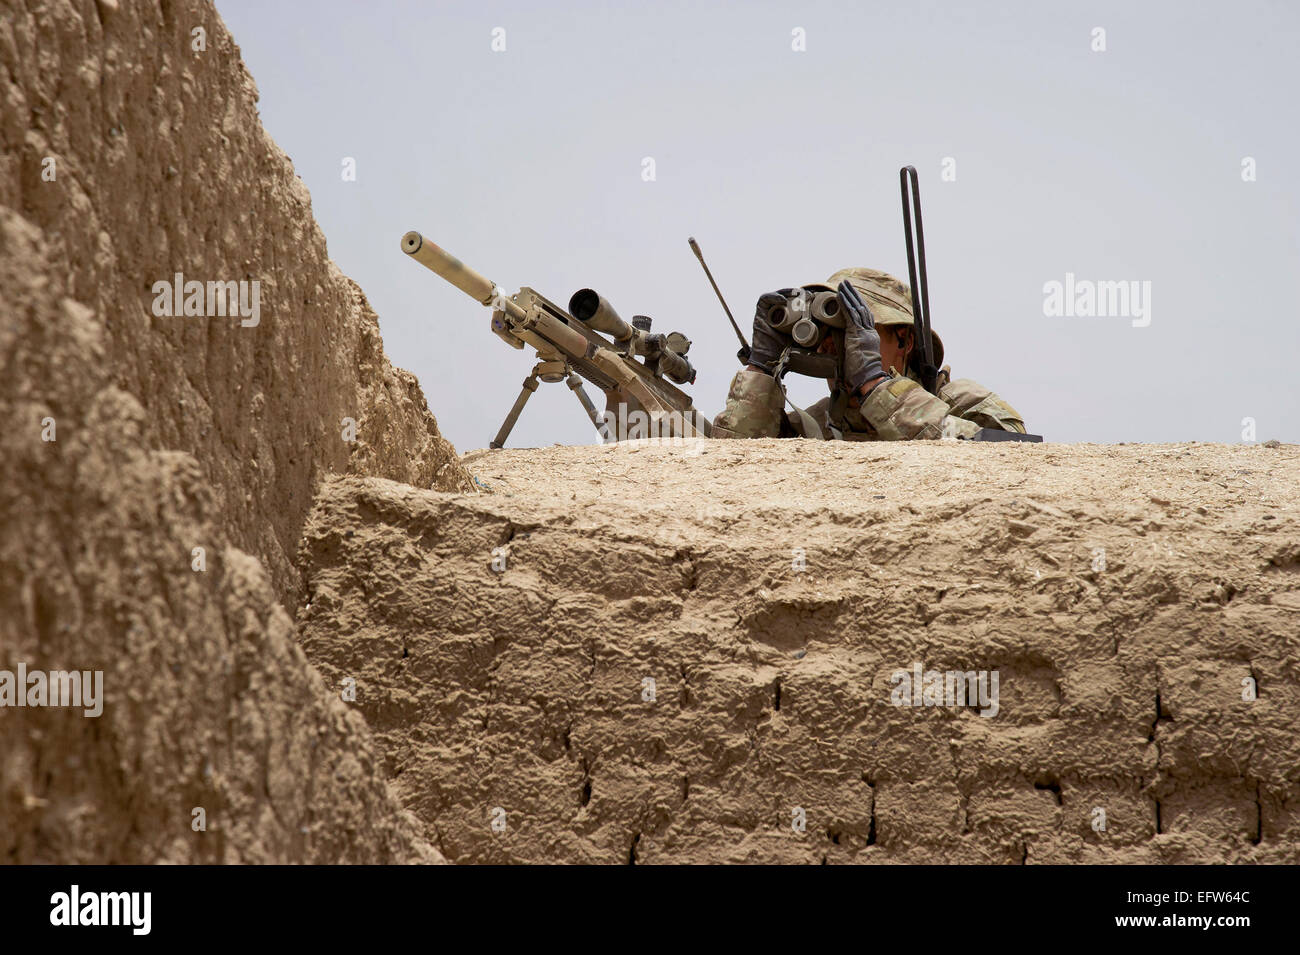 A US special forces soldier scans the horizon for insurgents during a patrol May 25, 2012 in Maiwand district, Kandahar - Stock Image